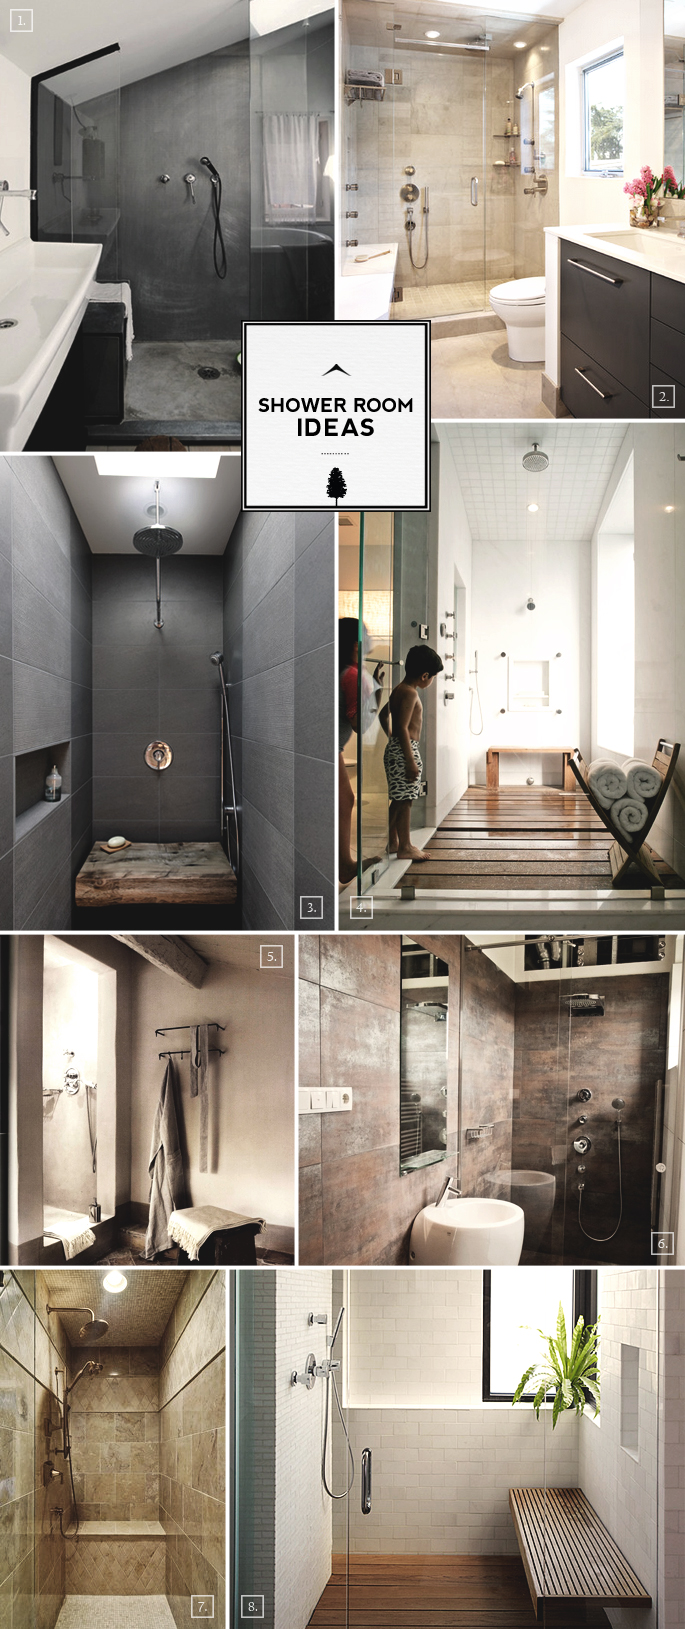 Design Notes for Shower Room Ideas Home Tree Atlas